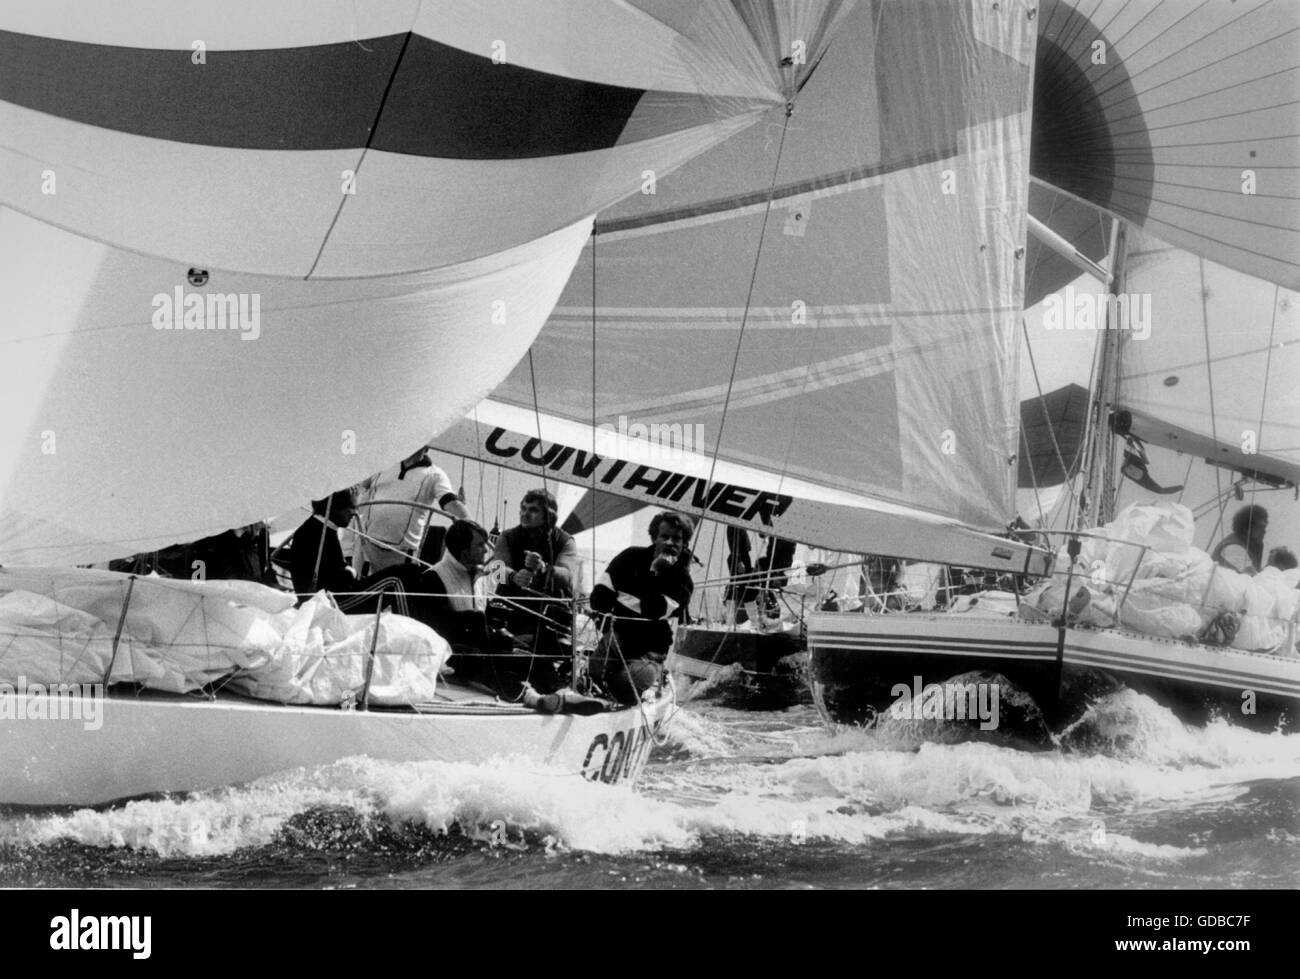 AJAX NEWS PHOTOS; 1983. COWES, ENGLAND. - ADMIRAL'S CUP YACHTS CONTAINER (GER) AND BLACK TOPIC (GB) START THE - Stock Image